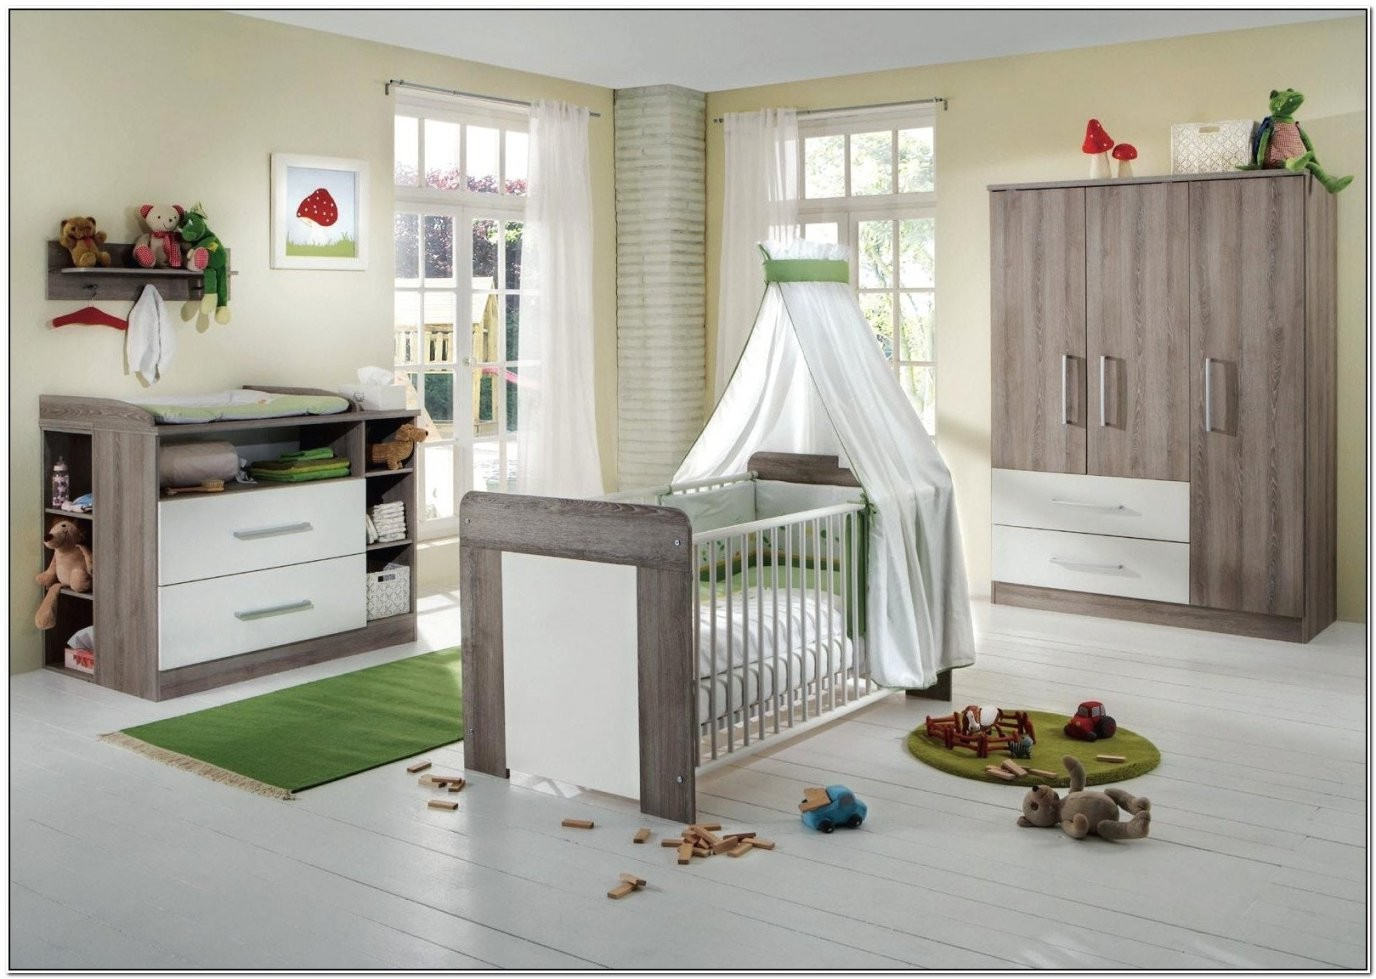 86 Luxus Baby One Kinderzimmer Lara